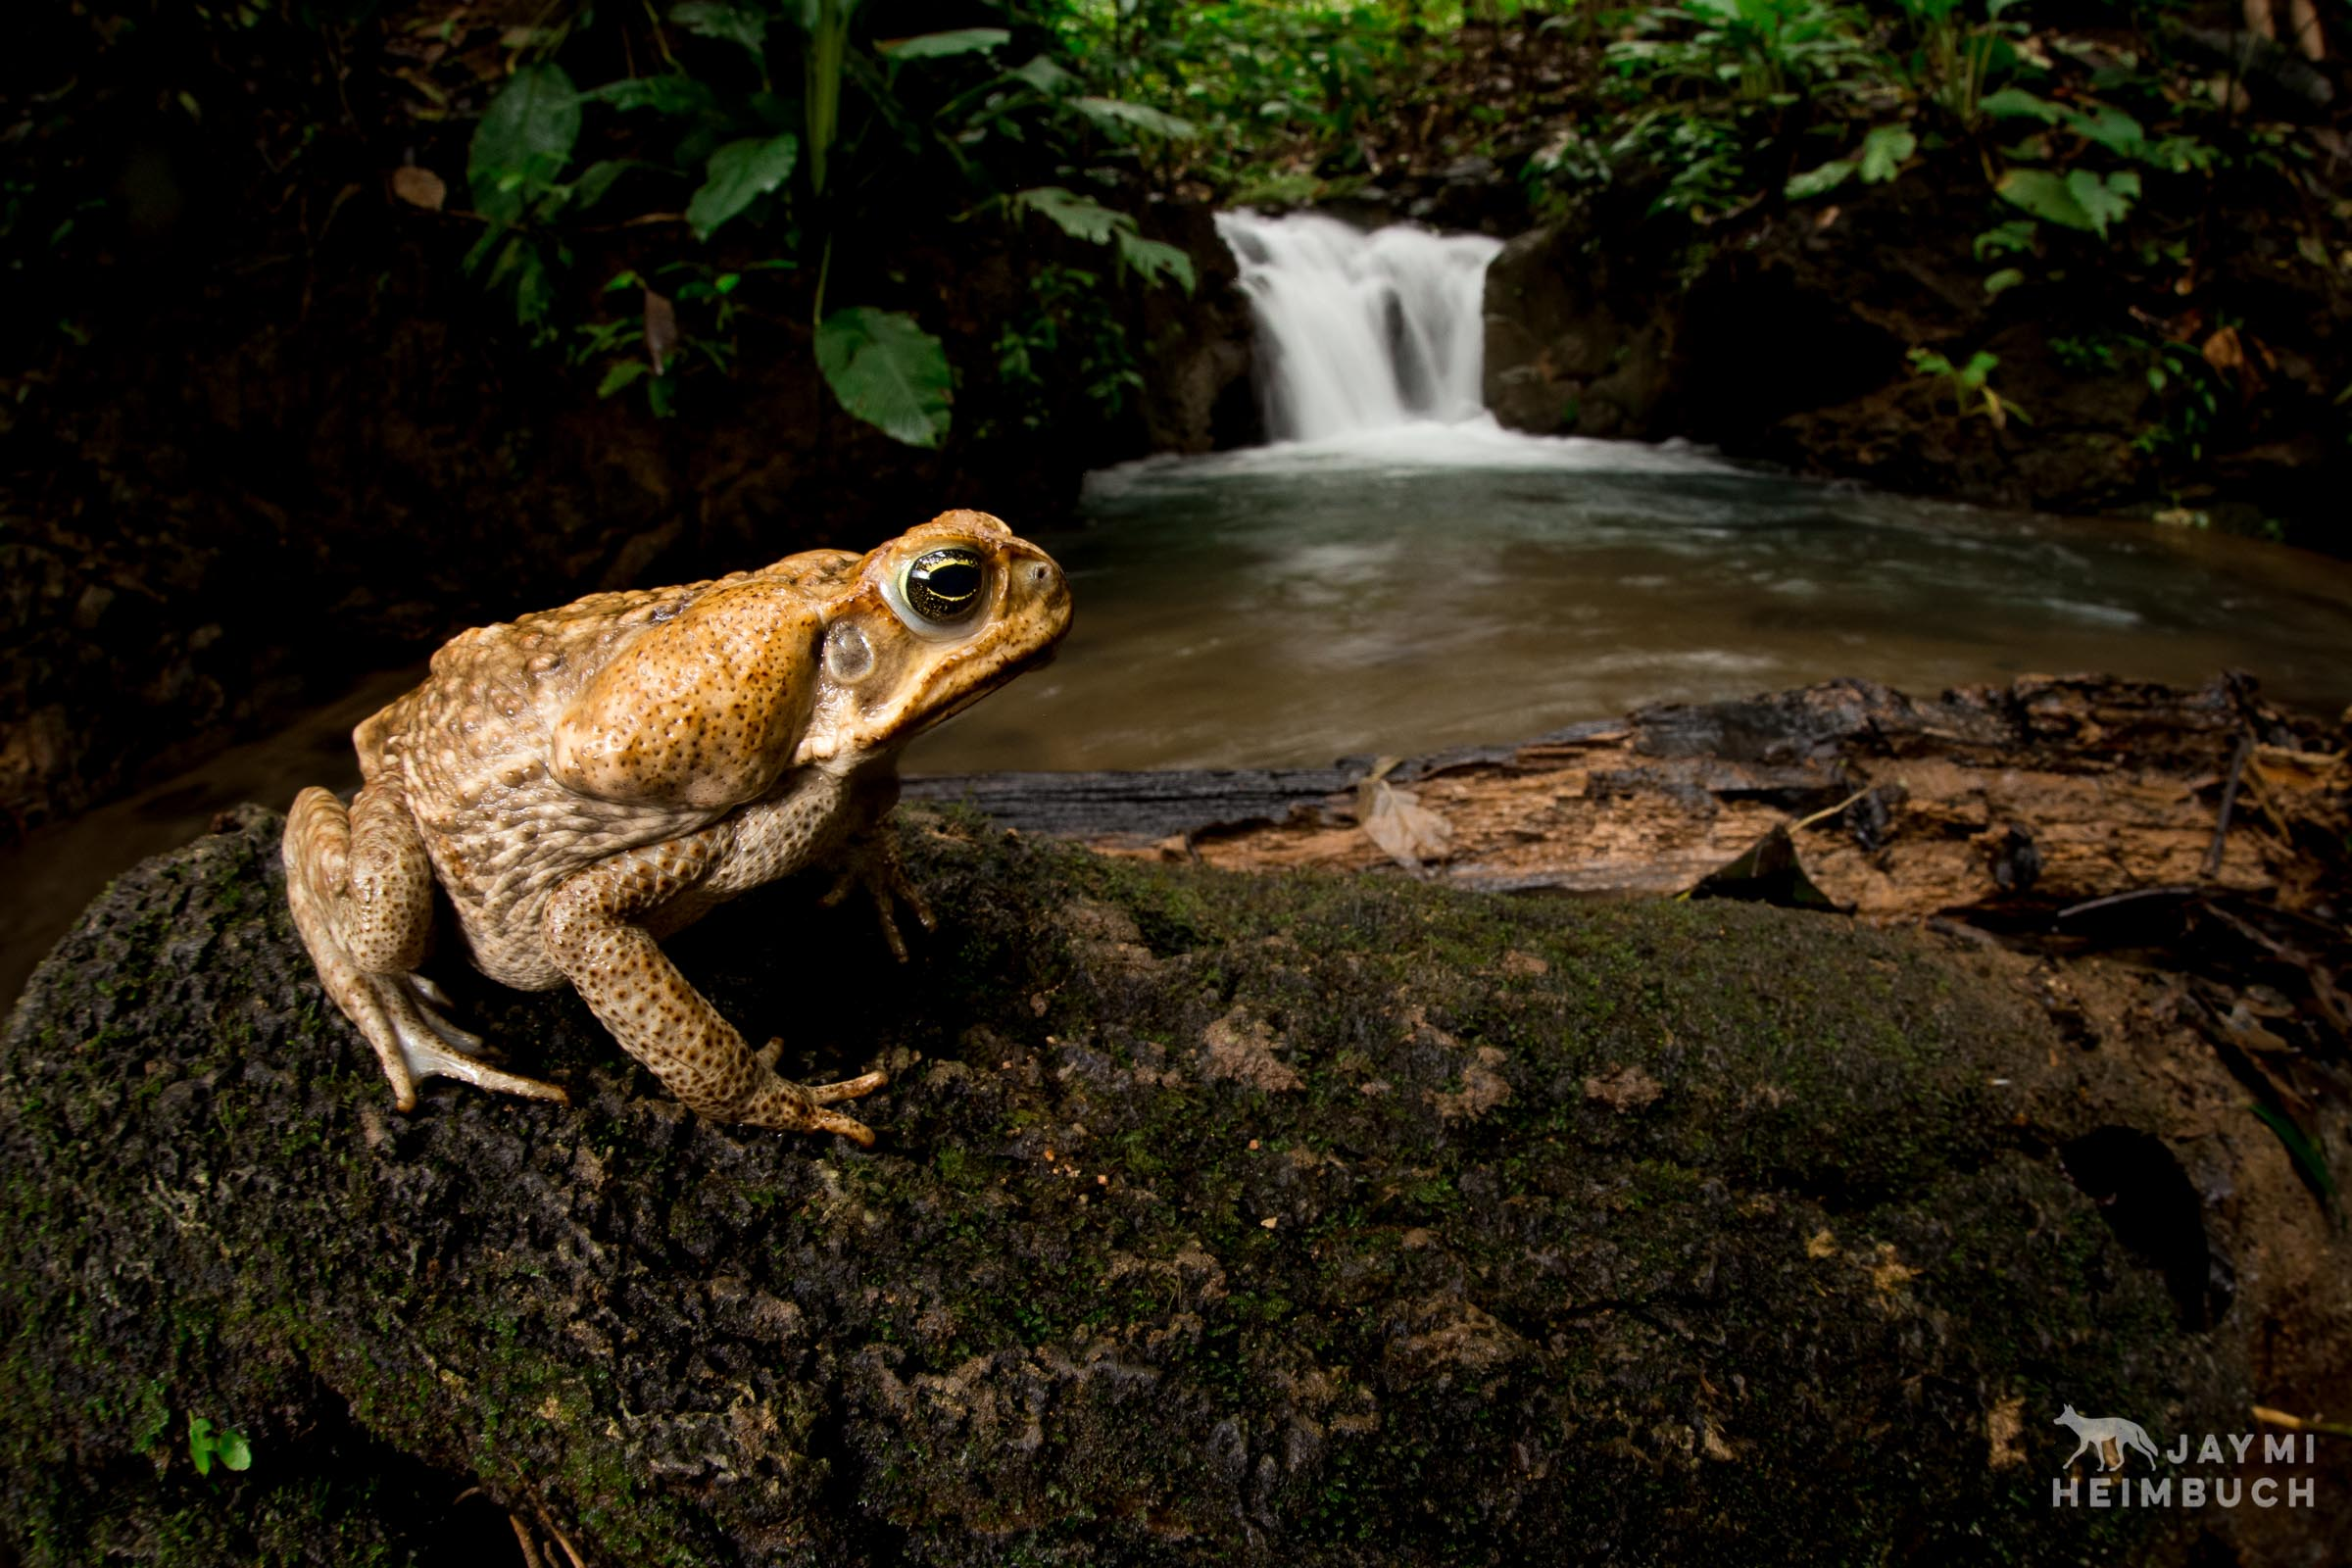 An adult marine toad (Rhinella marina) rests on a river rock in